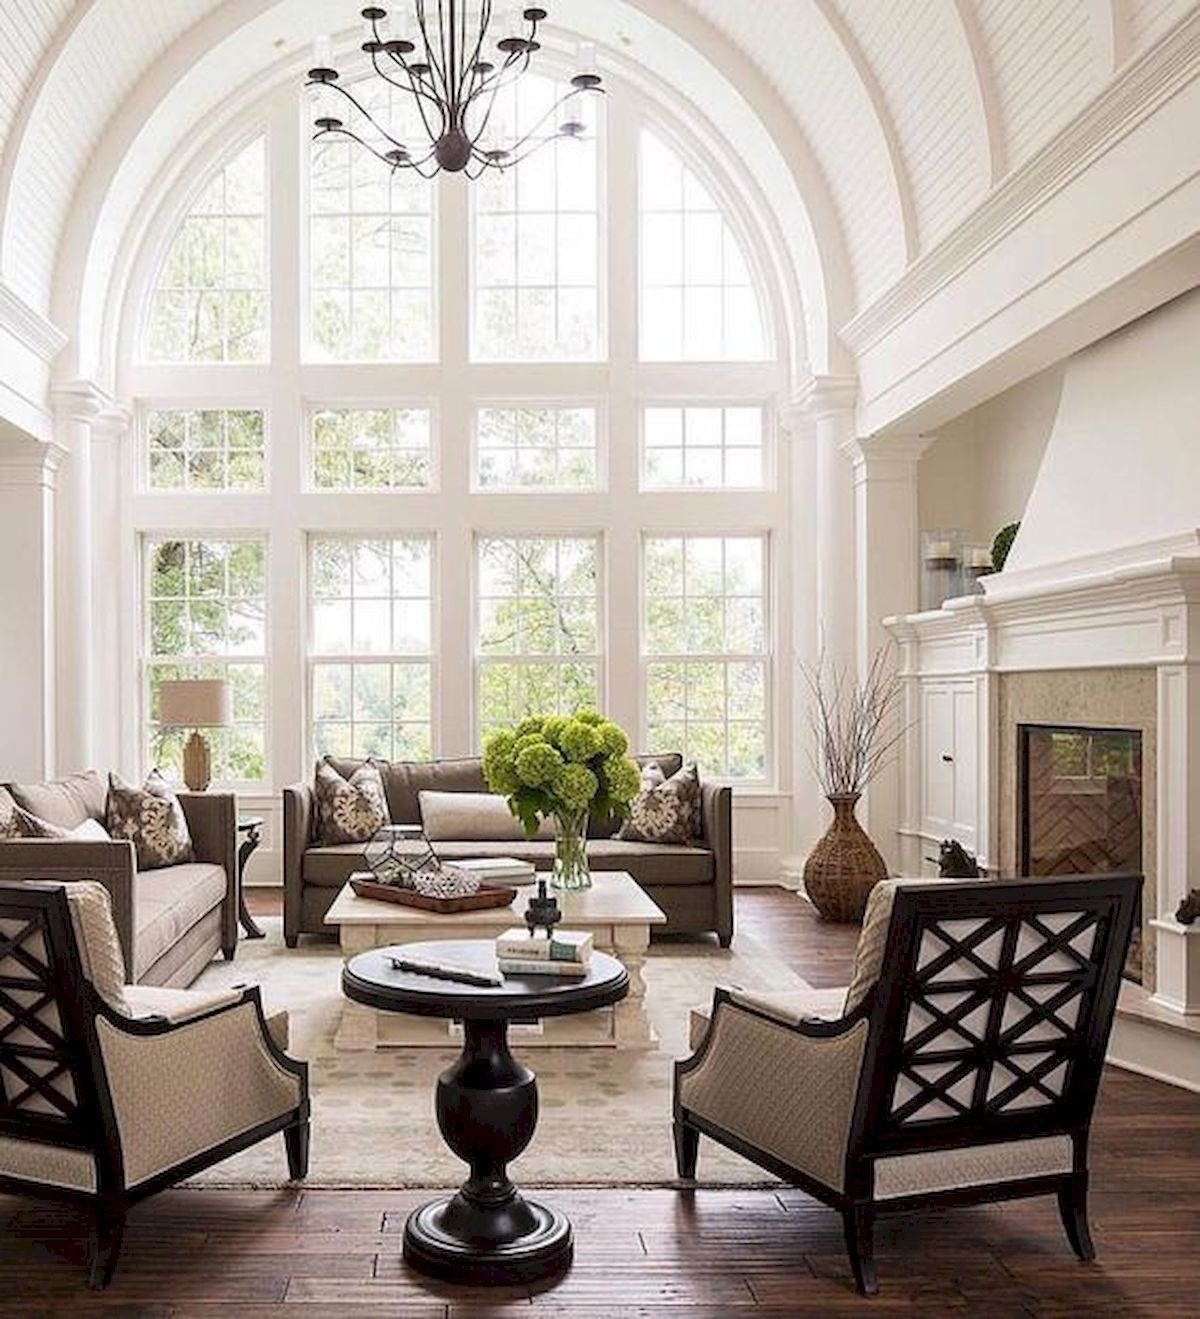 30 Elegant Farmhouse Living Room Decor Ideas images